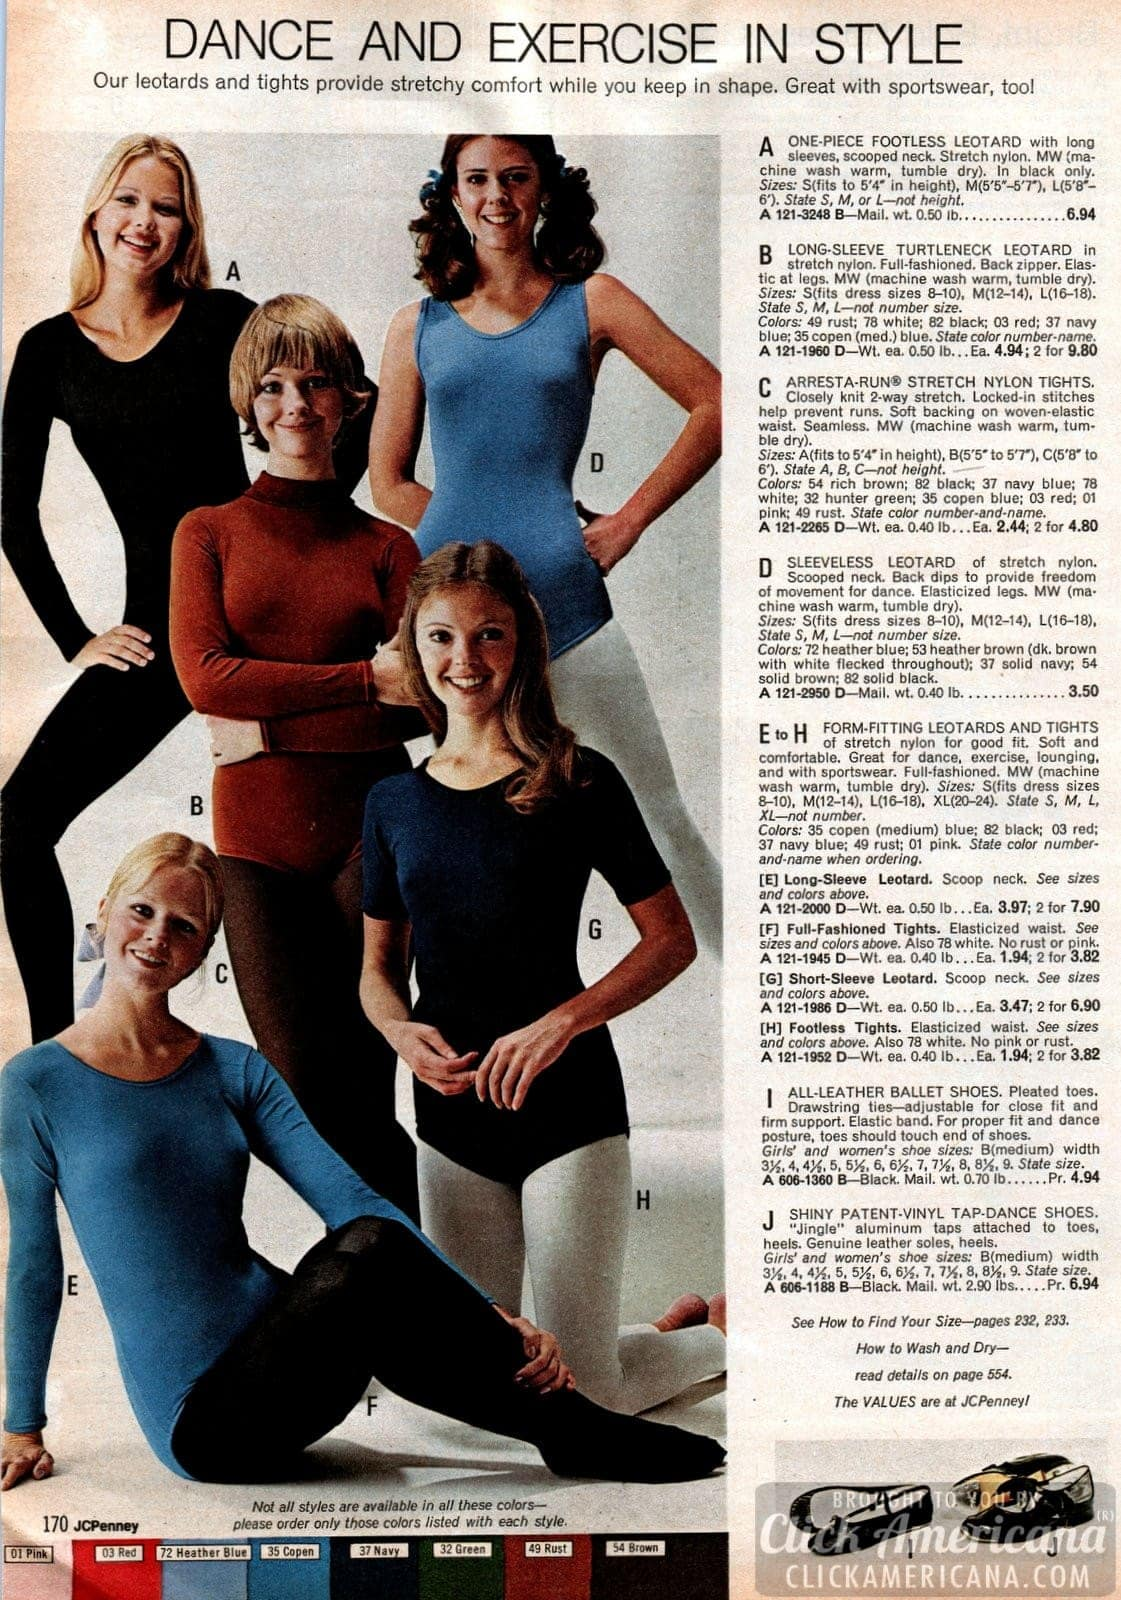 Dance & exercise wear - leotards, tights, ballet shoes, patent tap dance shoes